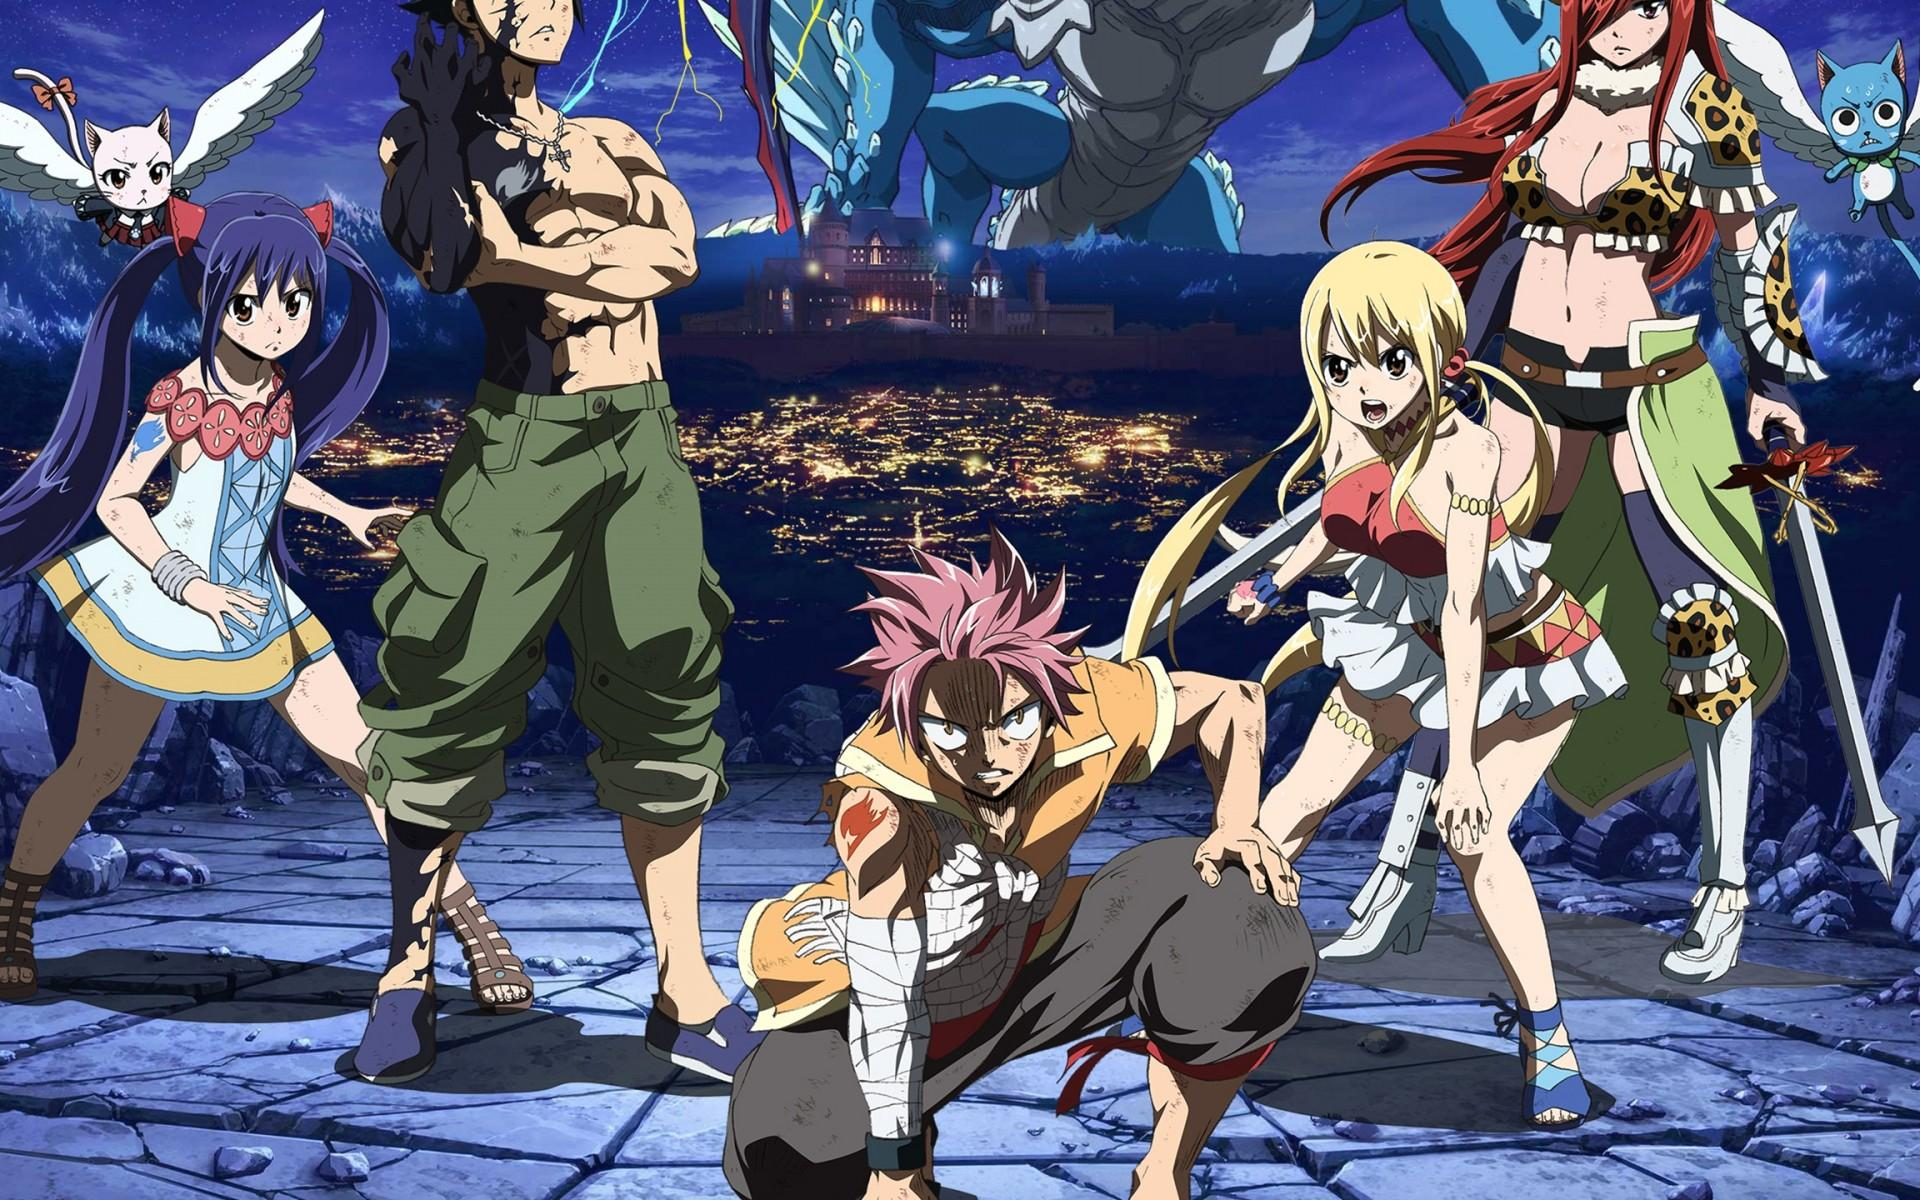 Anime Hd Fairy Tail Wallpapers Wallpaper Cave